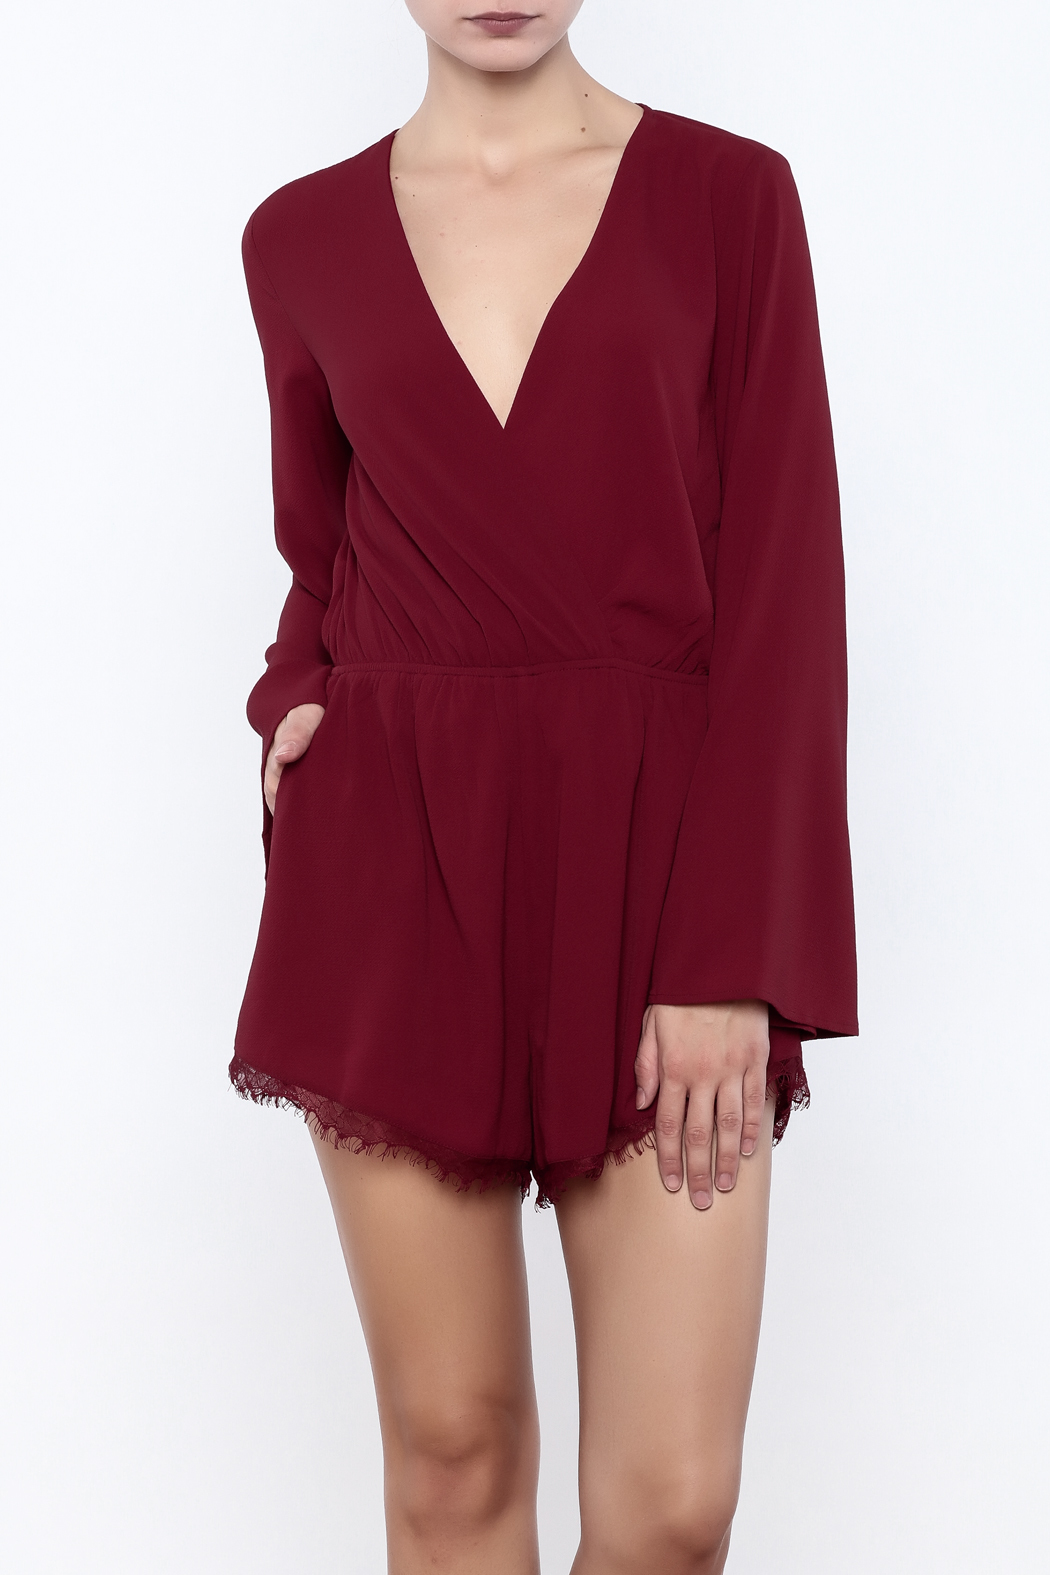 ea0e9e6489ab Bio Long Sleeve Romper from Brooklyn by BB Collective — Shoptiques